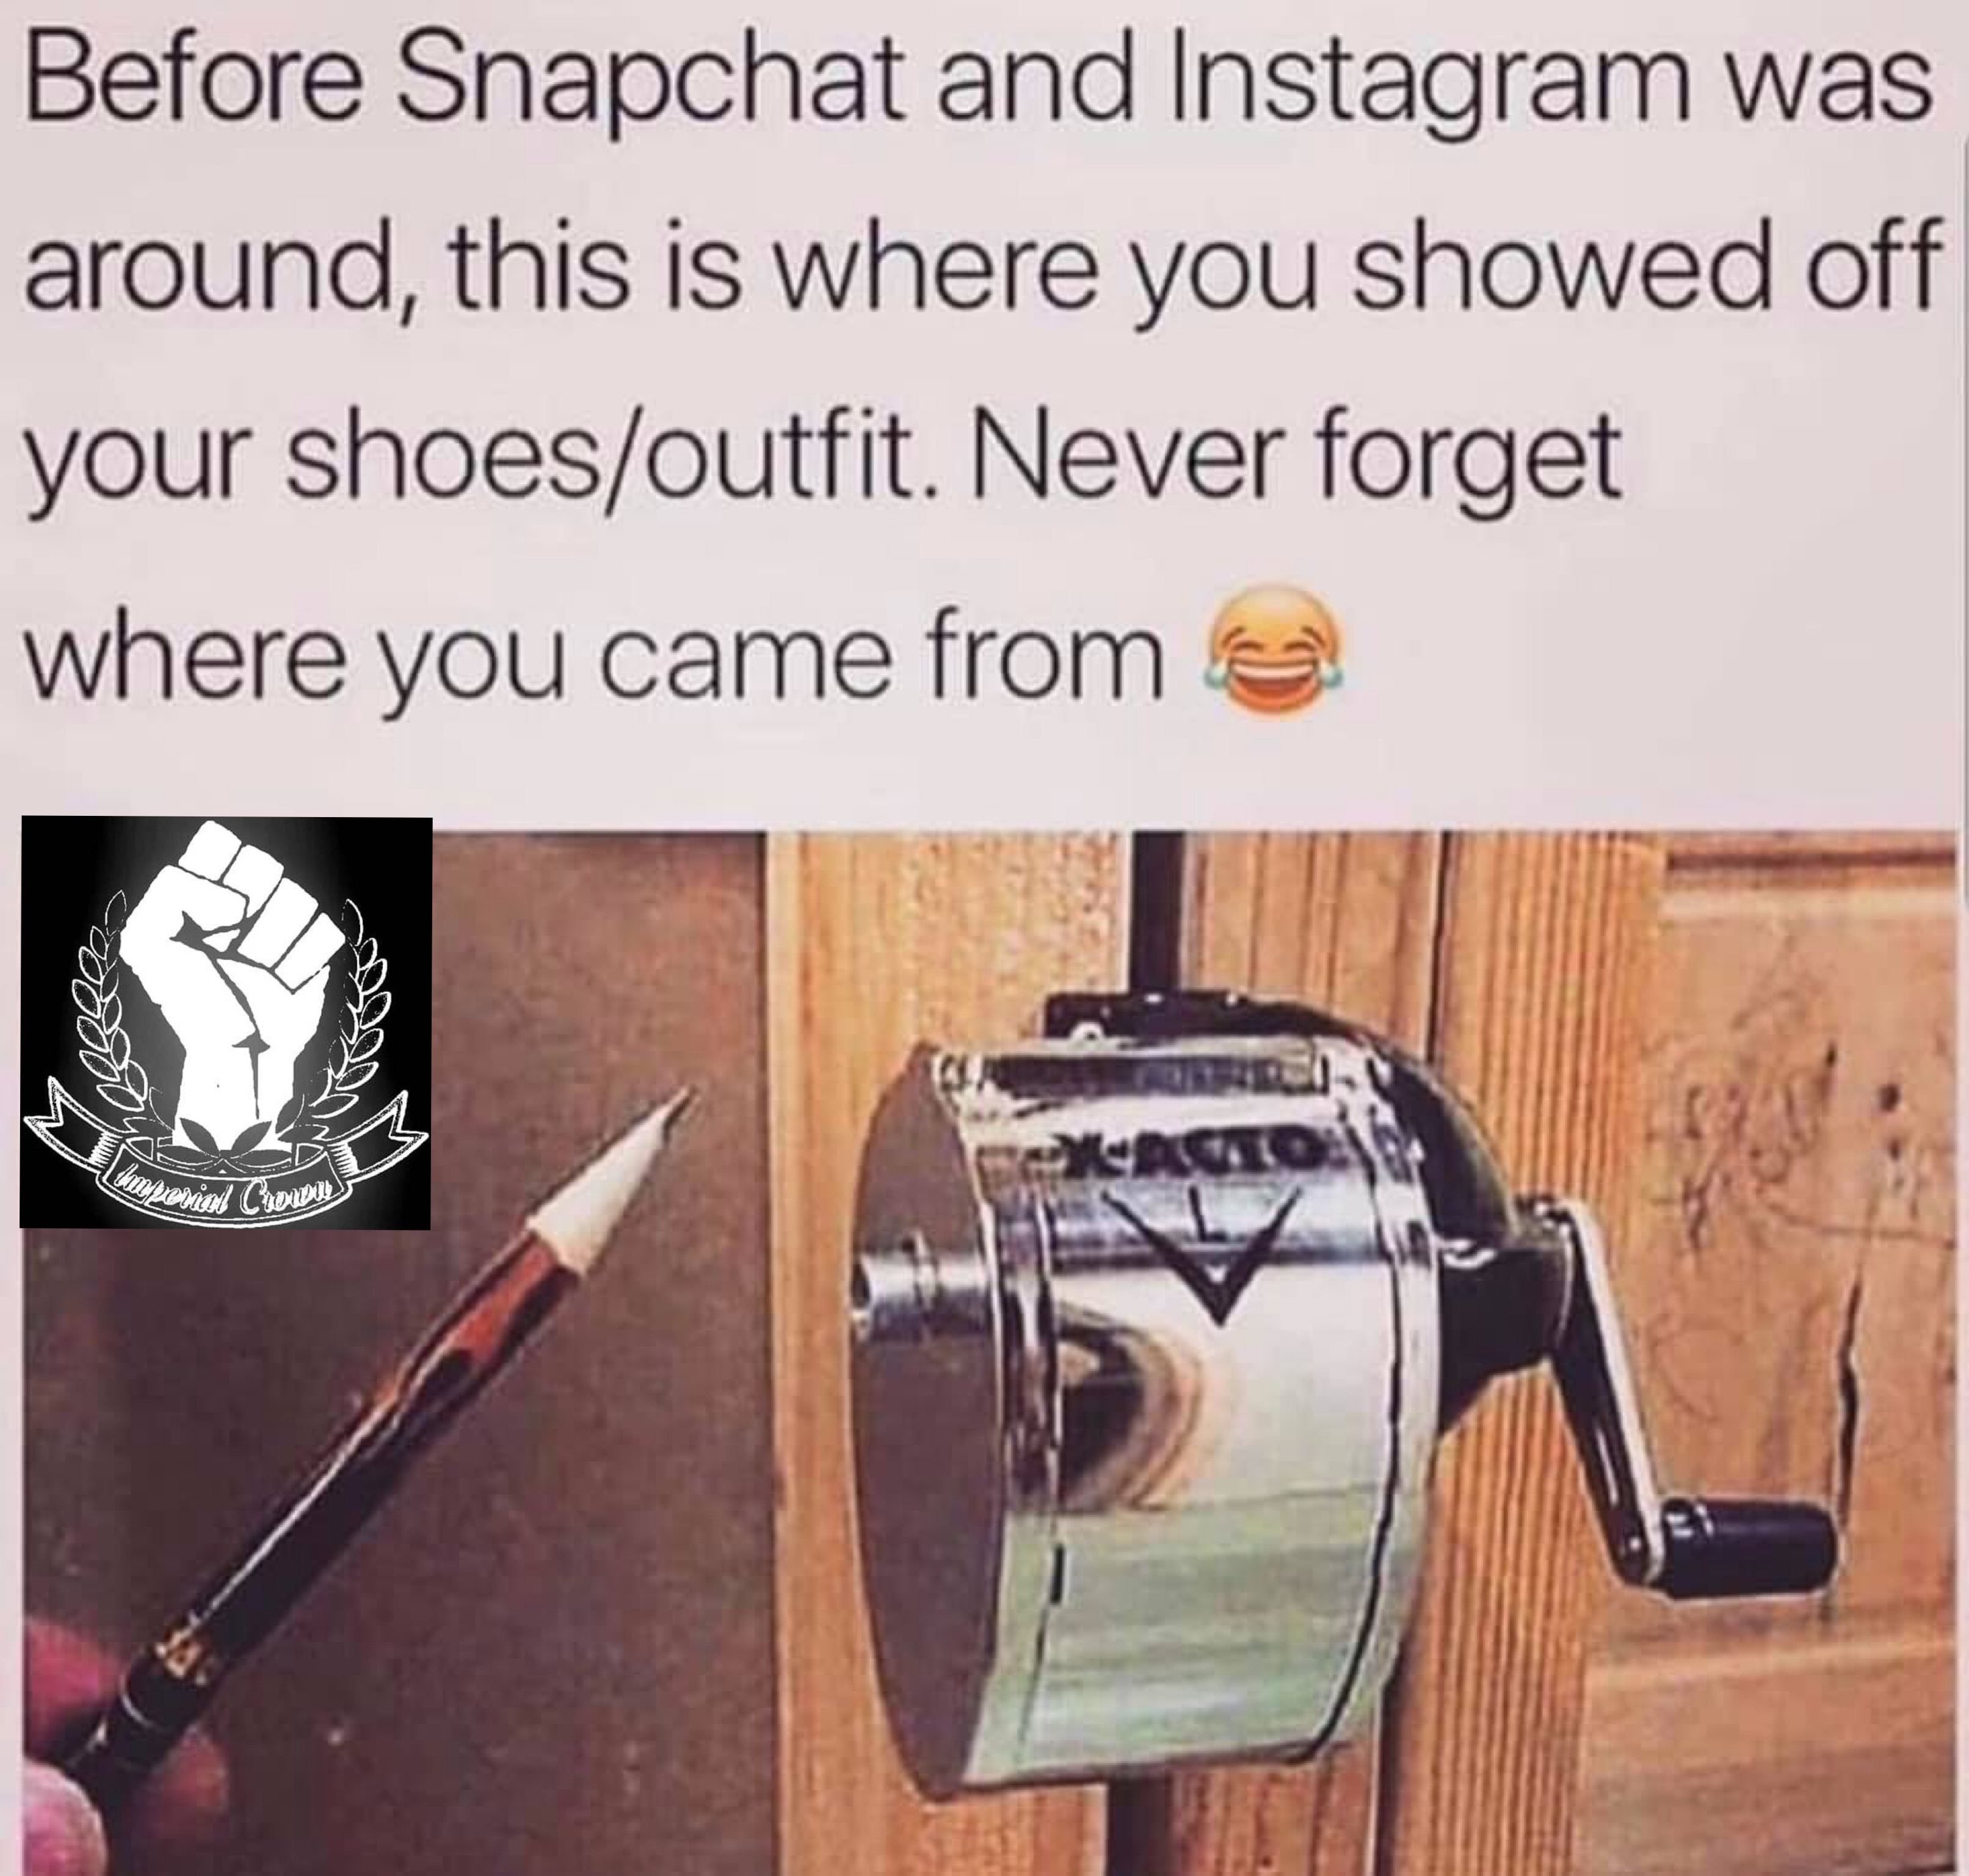 Before Snapchat and Instagram was around, this is where you showed off your shoes or outfit